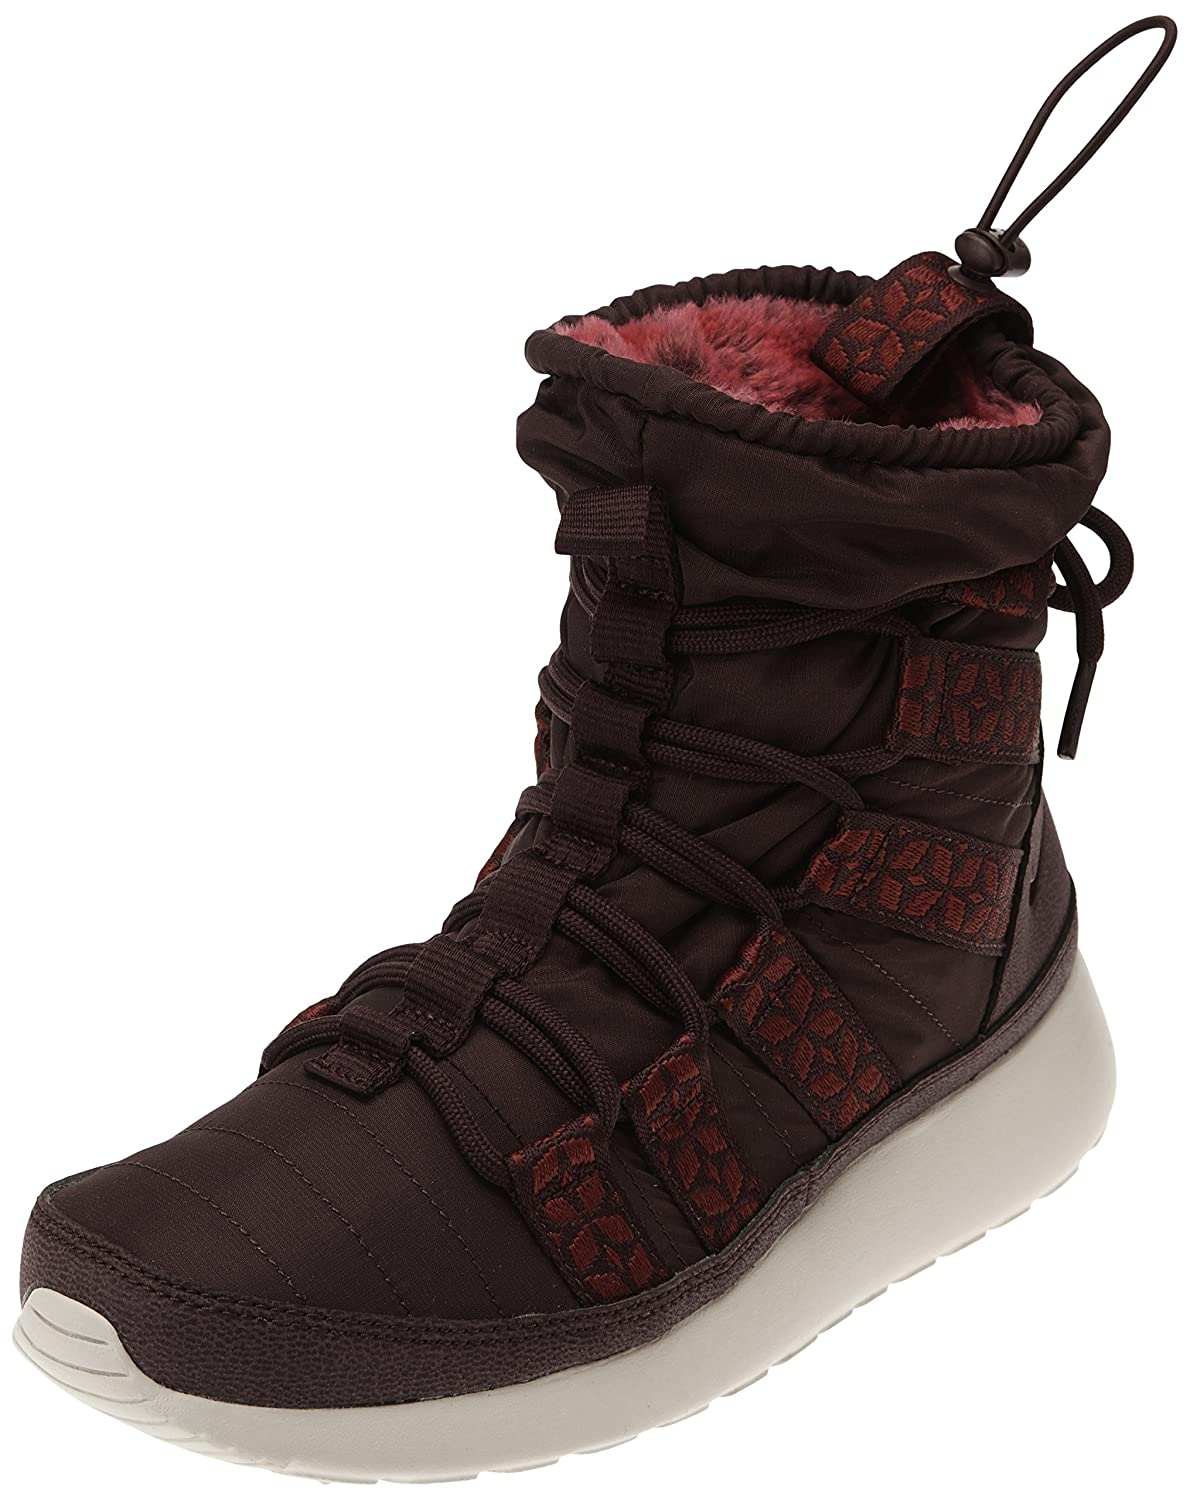 ef8bf5f84741e Nike Women s Rosherun Hi Sneakerboot Deep Burgundy Team Red Lght Bn Boot 7  Women US  Amazon.ca  Shoes   Handbags